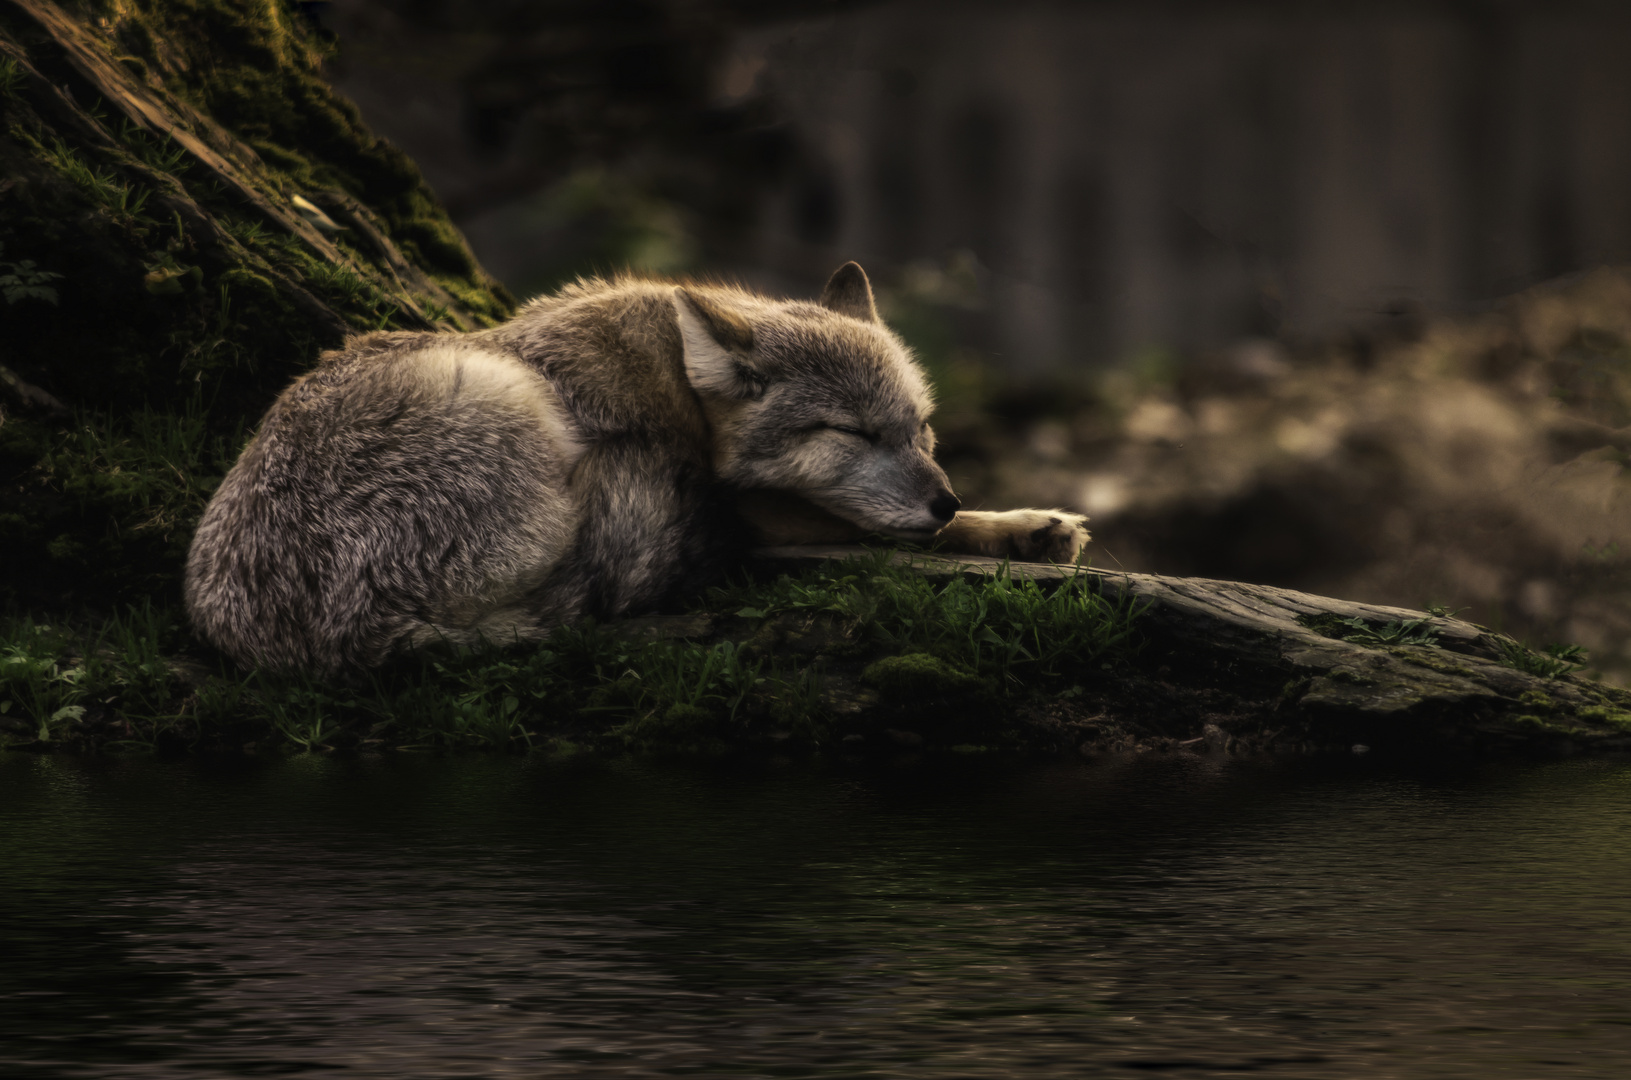 sleeping where the waters flow